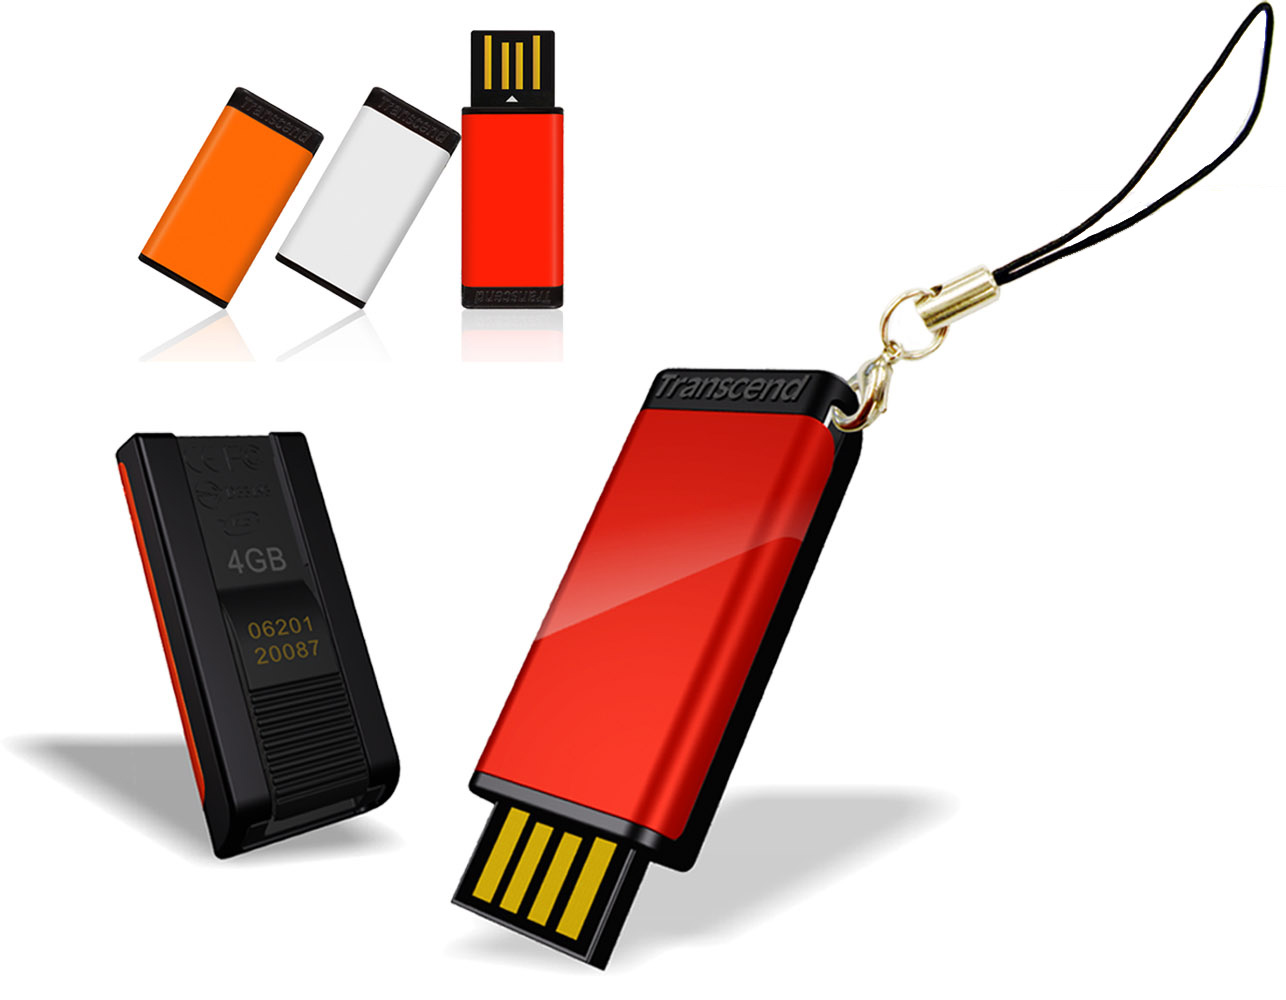 Flash Drive / Transcend Information, Inc.